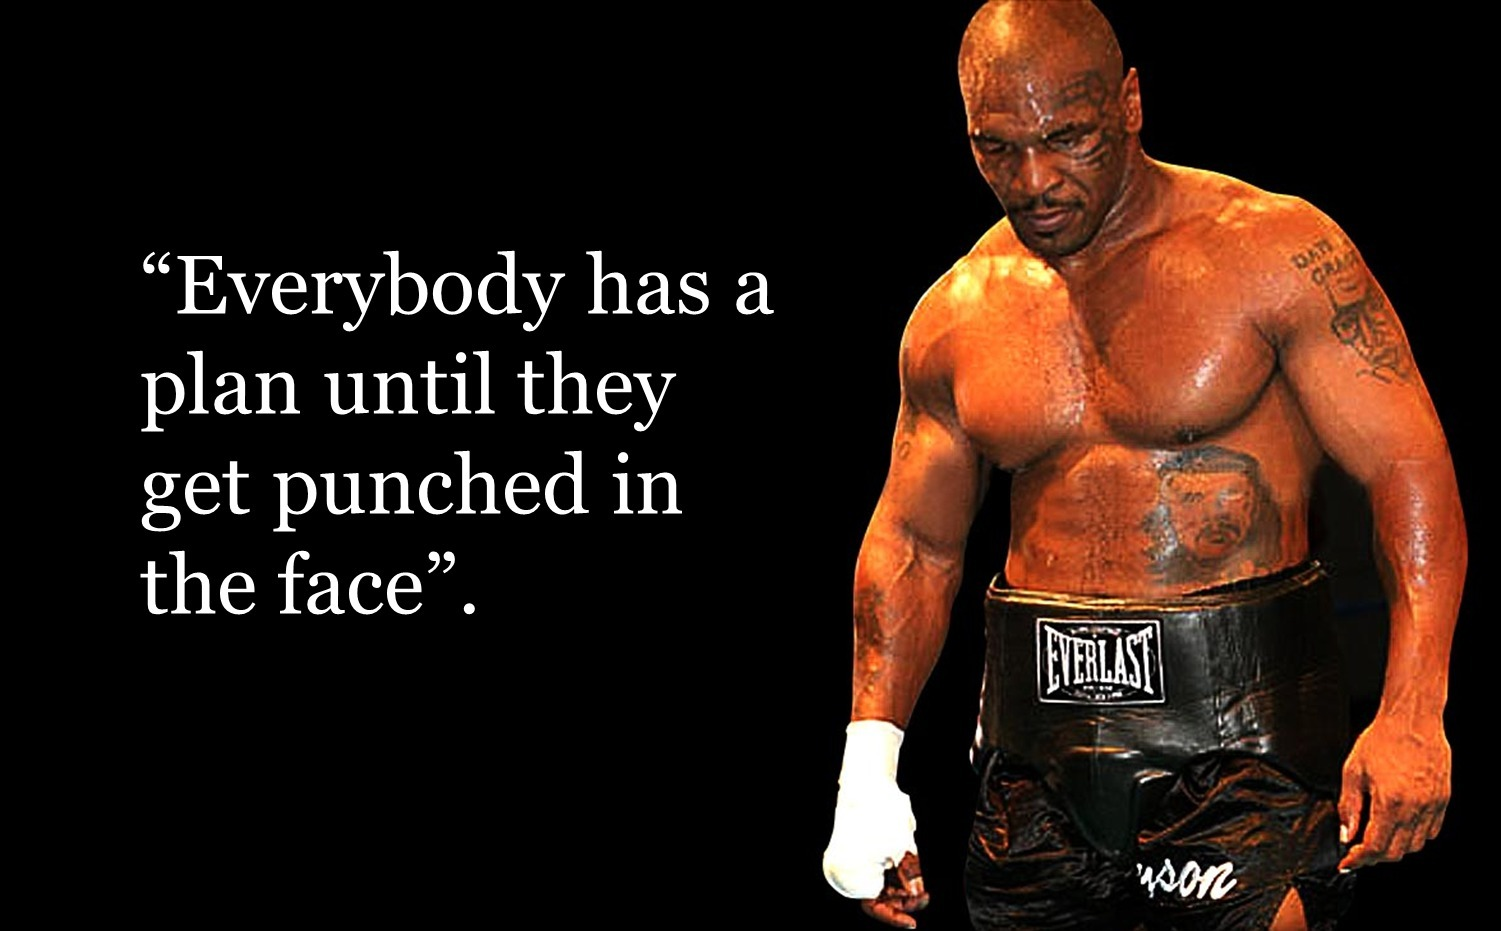 Mike Tyson Pictures HD Download Free Images on Unsplash Mike tyson photos download